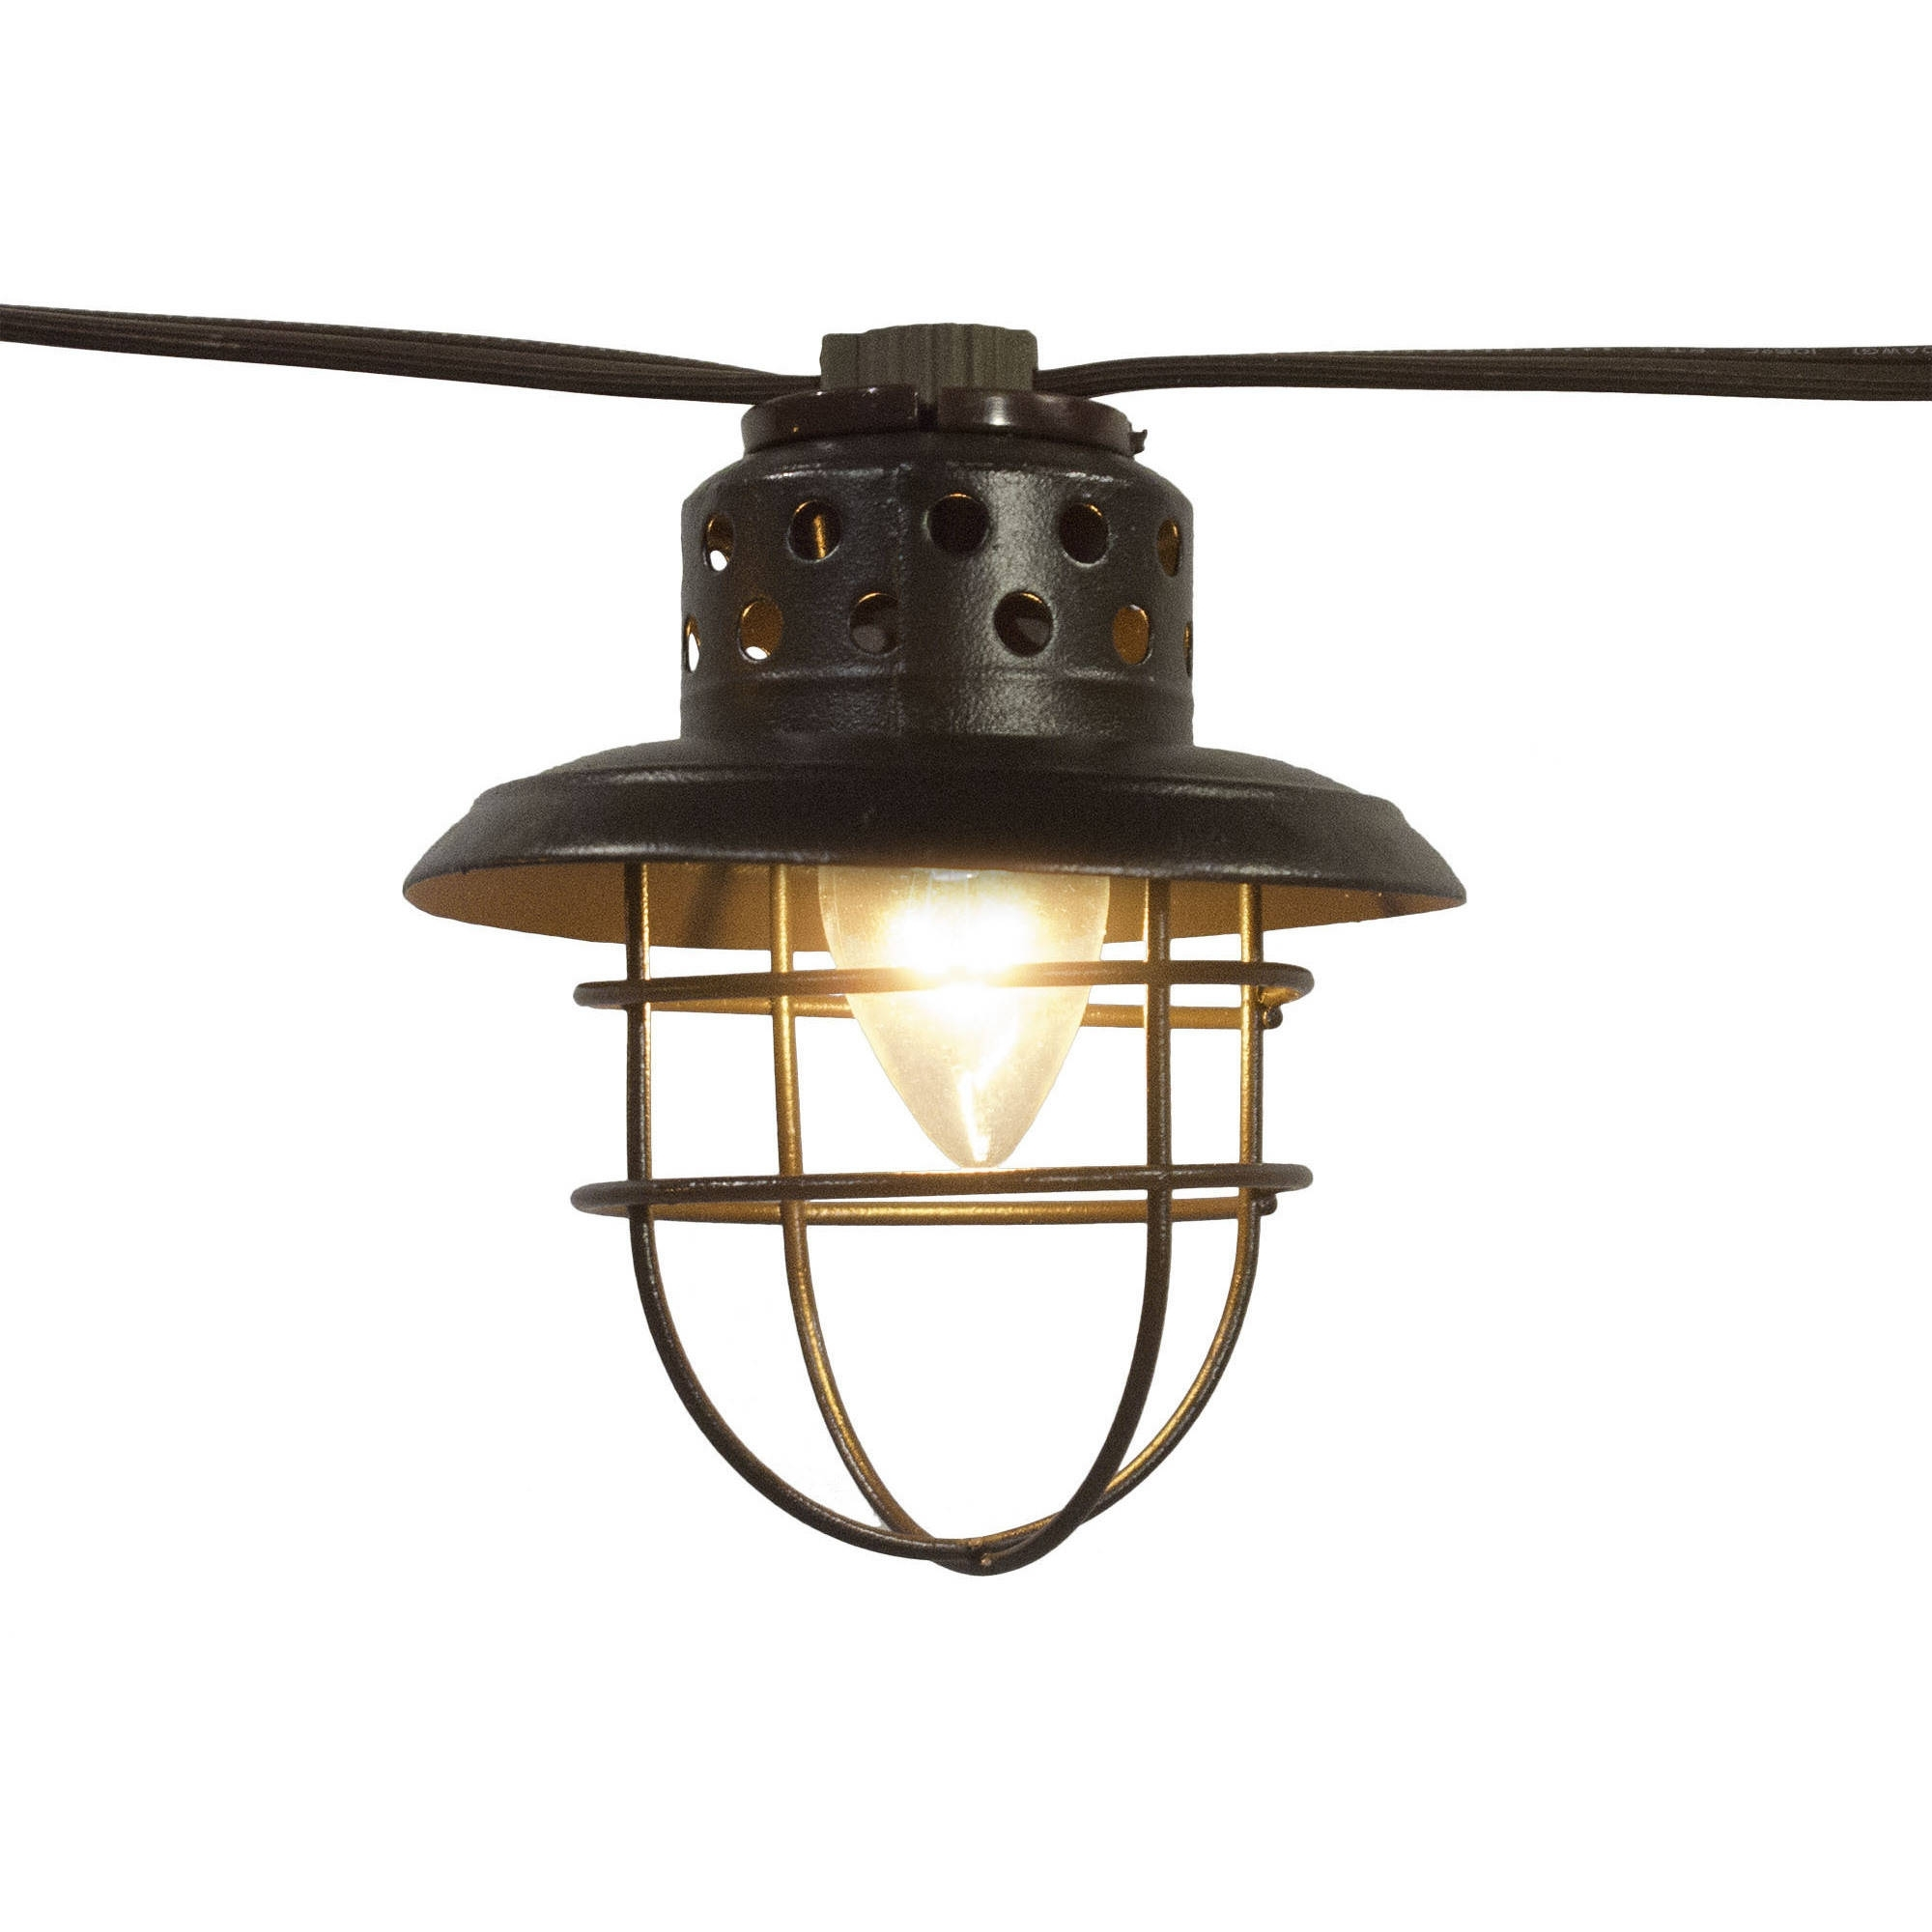 Better Homes And Gardens Outdoor Vintage Cage Lantern String Lights pertaining to Outdoor Lanterns on Stands (Image 1 of 20)